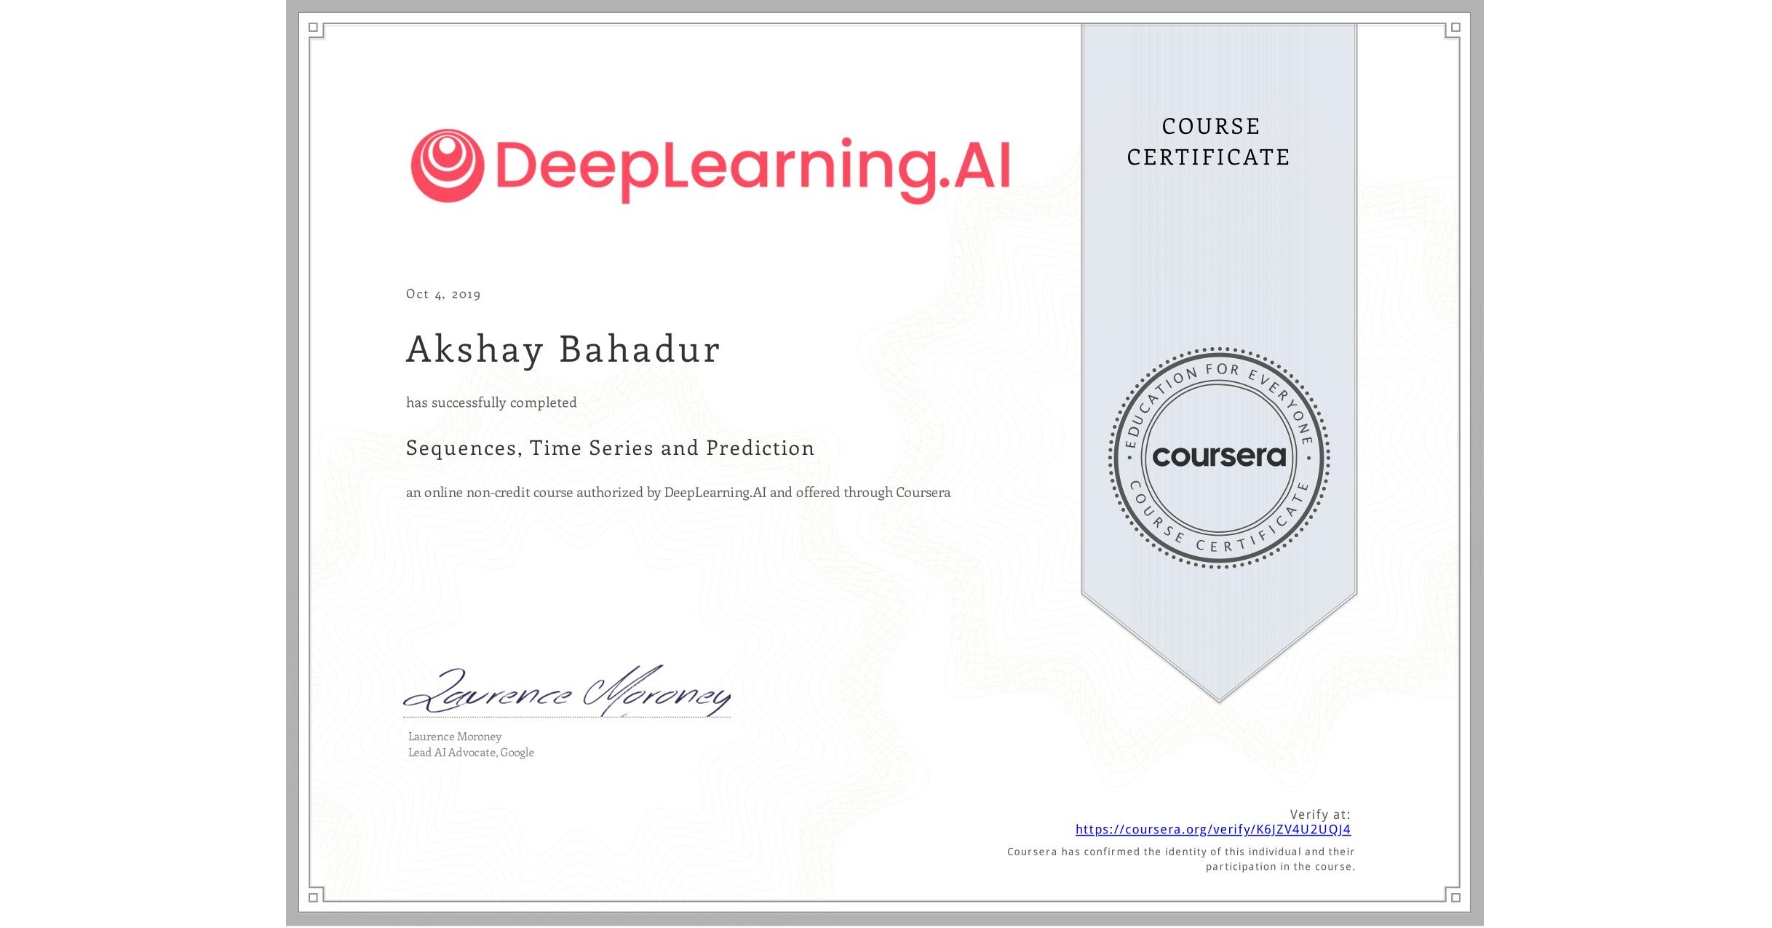 View certificate for Akshay Bahadur, Sequences, Time Series and Prediction, an online non-credit course authorized by DeepLearning.AI and offered through Coursera